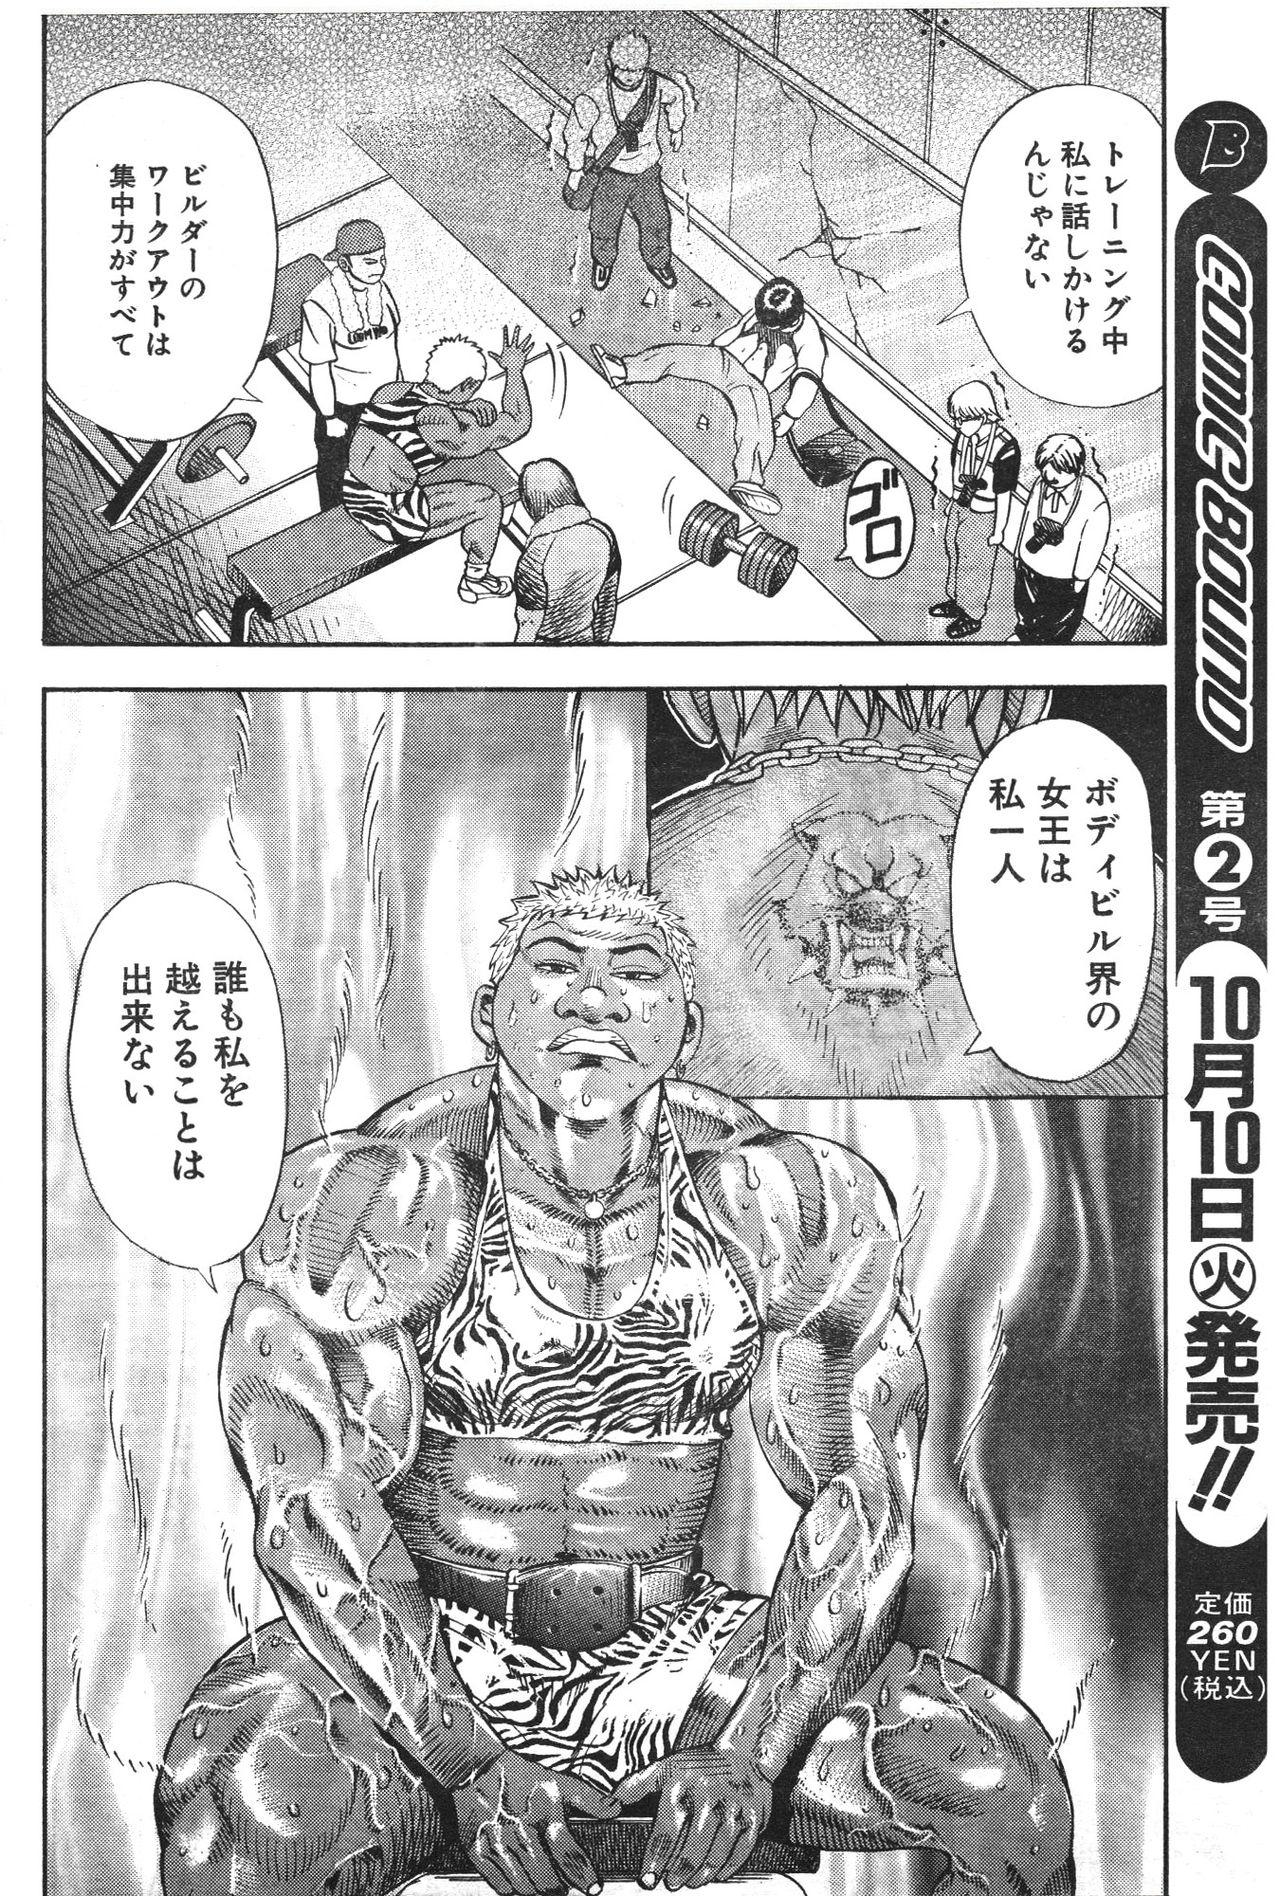 Muscle Strawberry Chapter 1 3